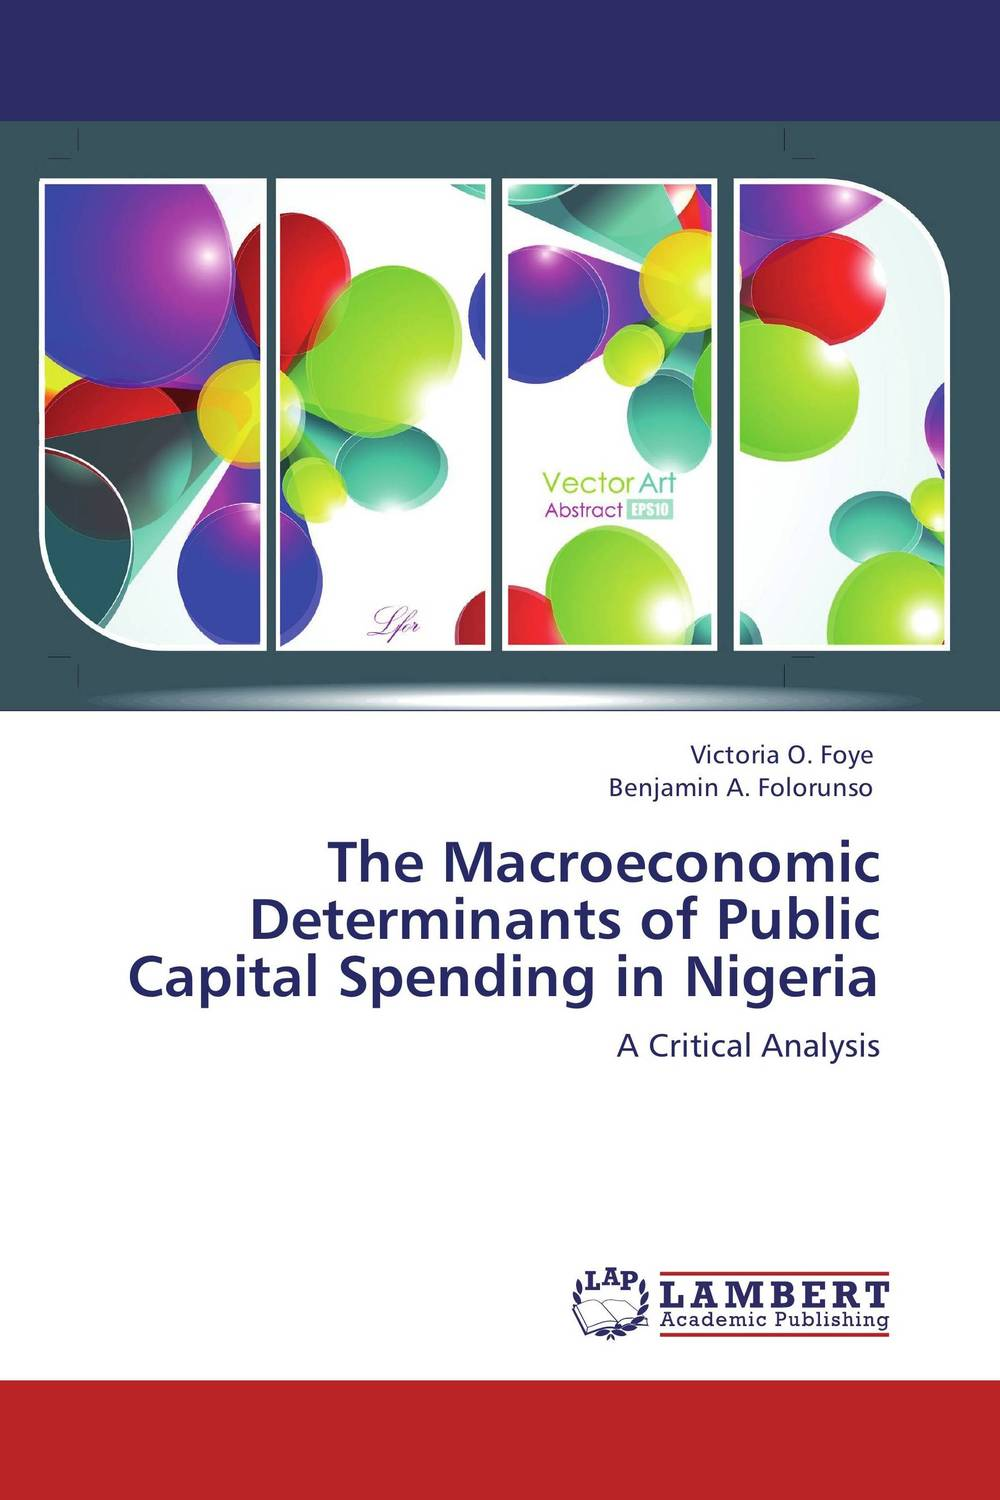 The Macroeconomic Determinants of Public Capital Spending in Nigeria